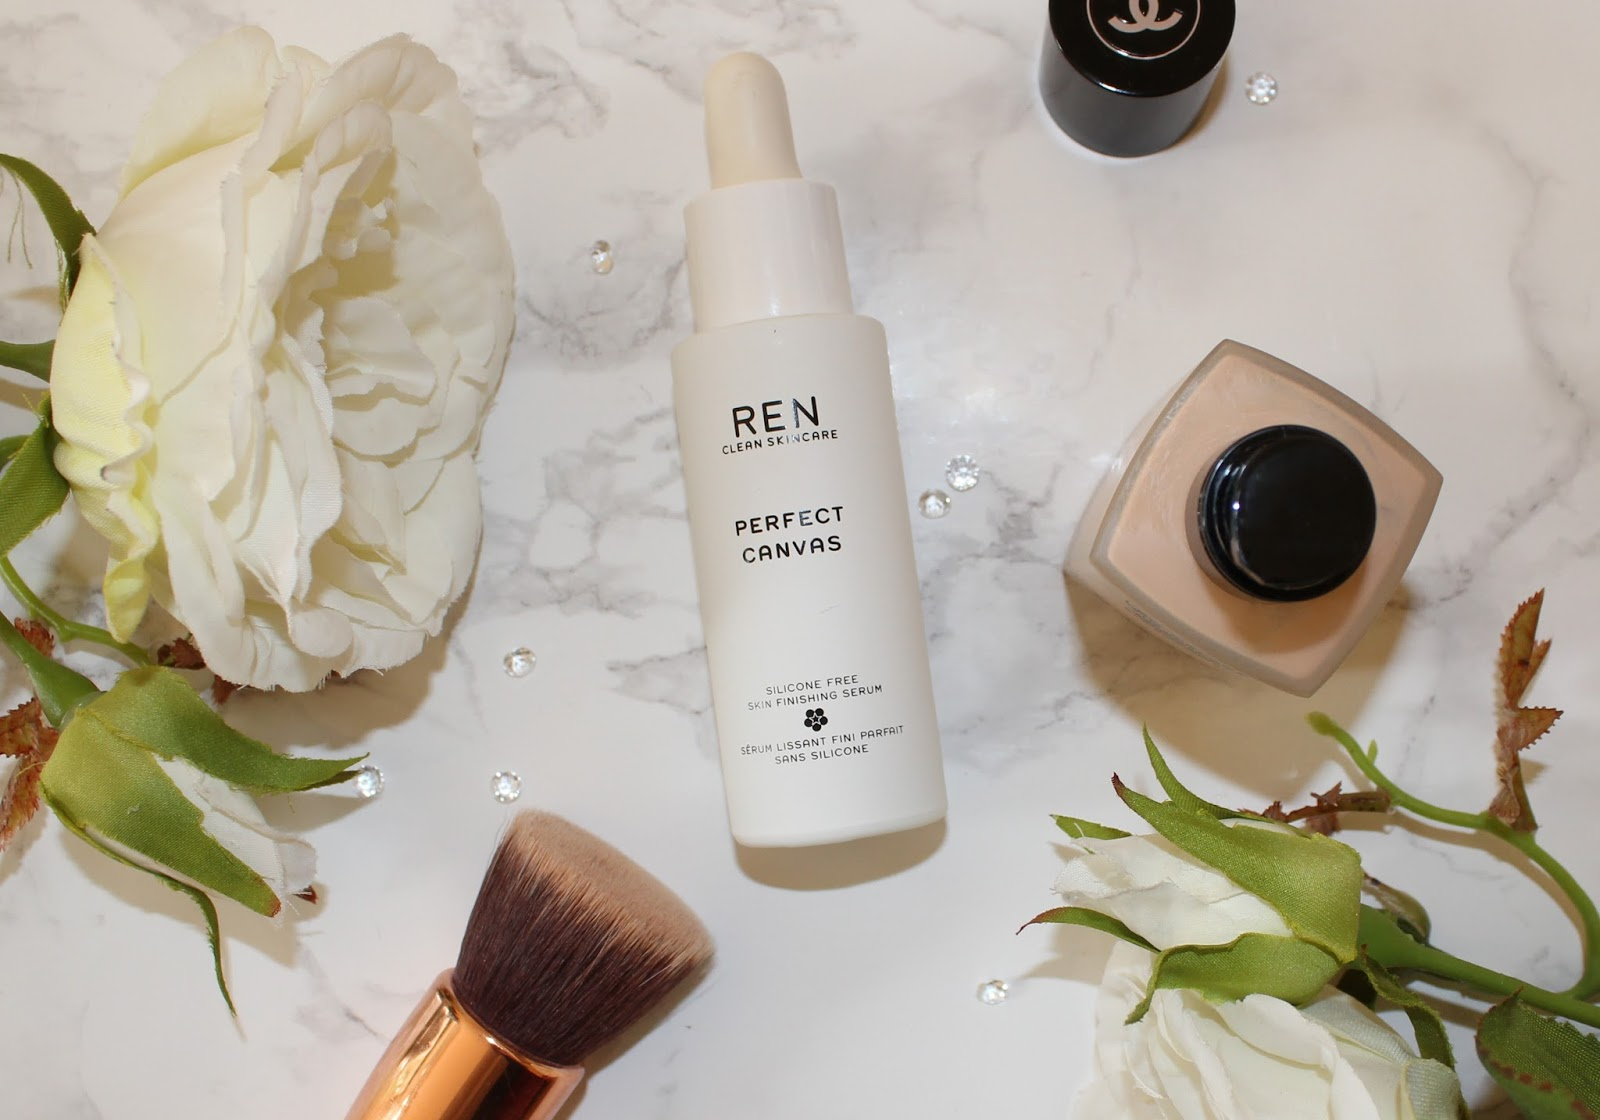 Ren Perfect Canvas Skin Finishing Serum - The Primer That's Good For Your Skin - 3